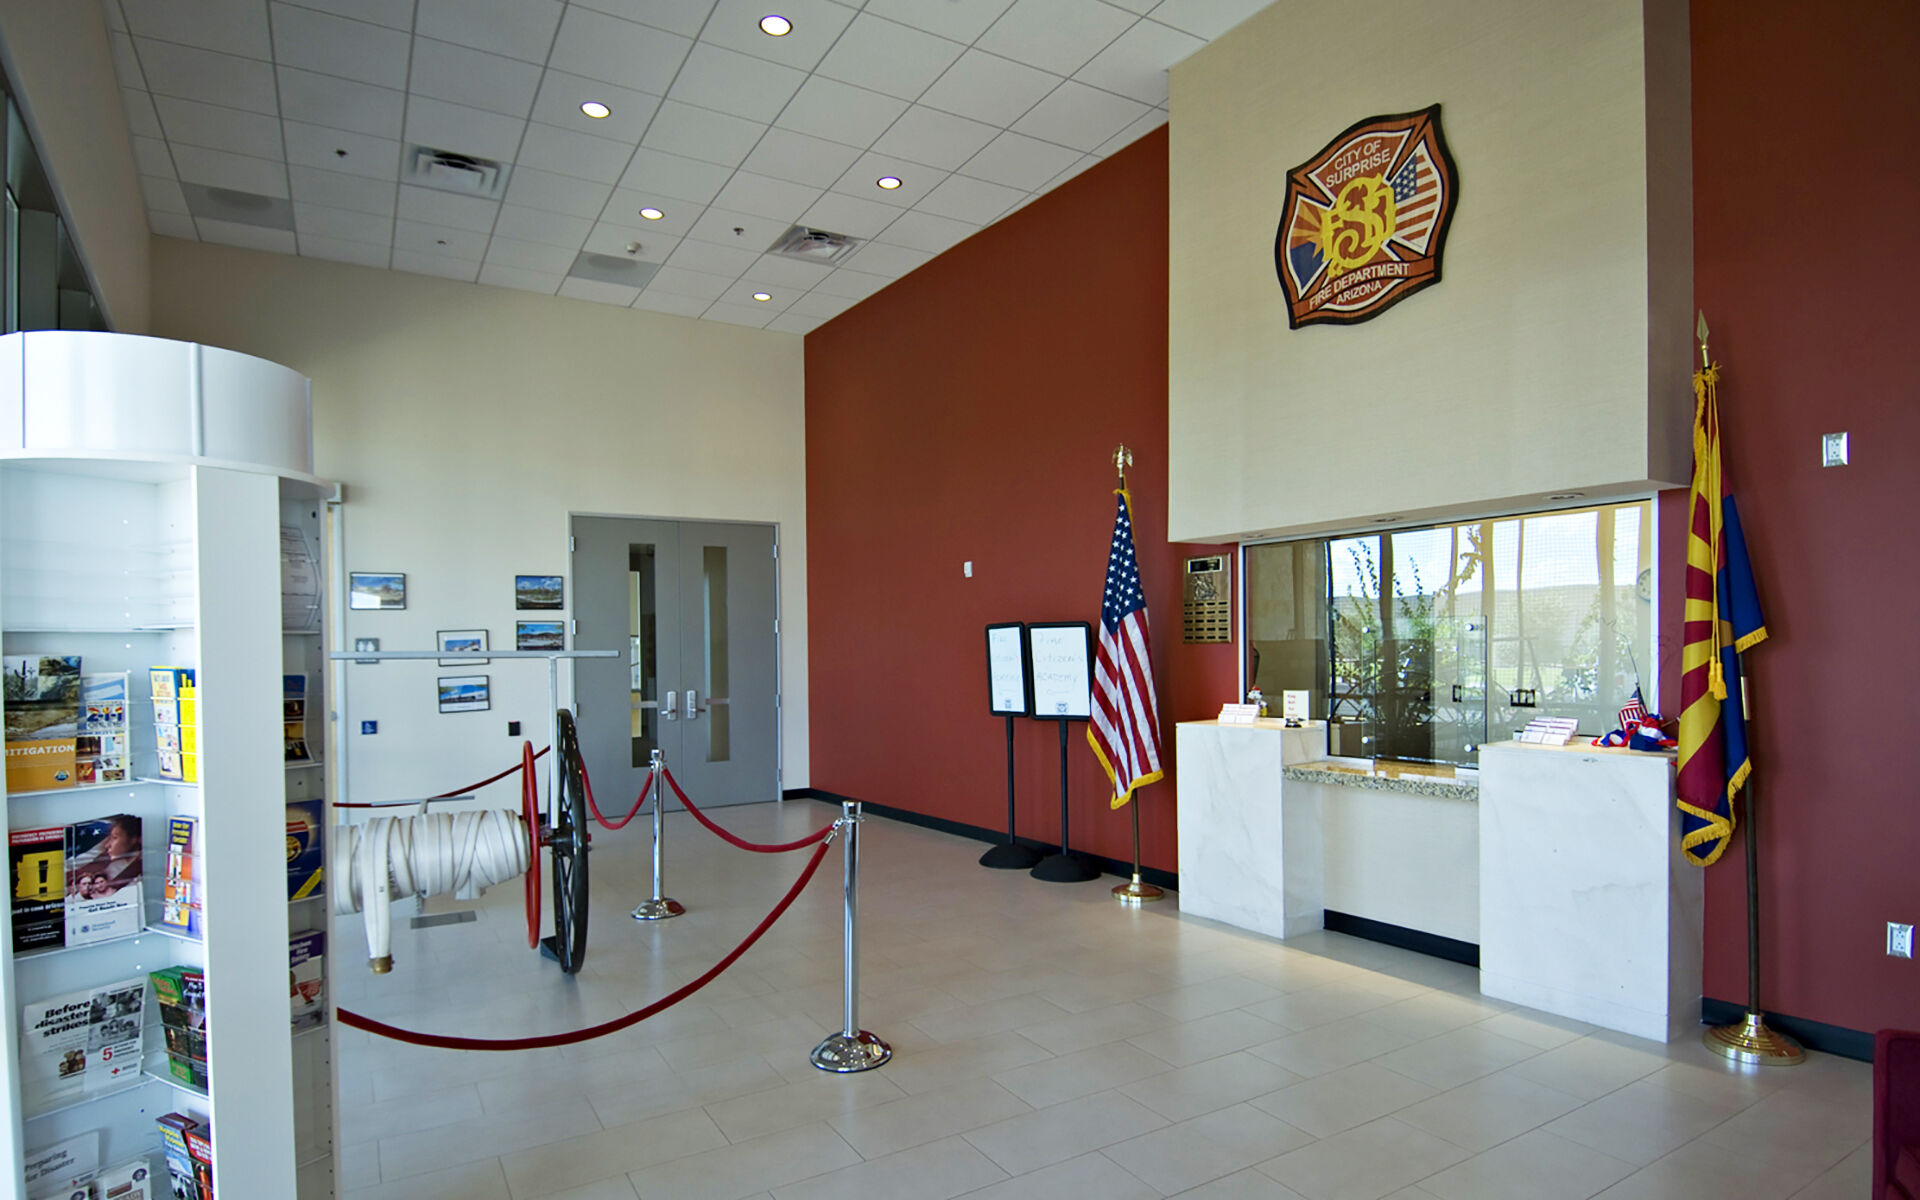 City of Surprise Public Safety Facility